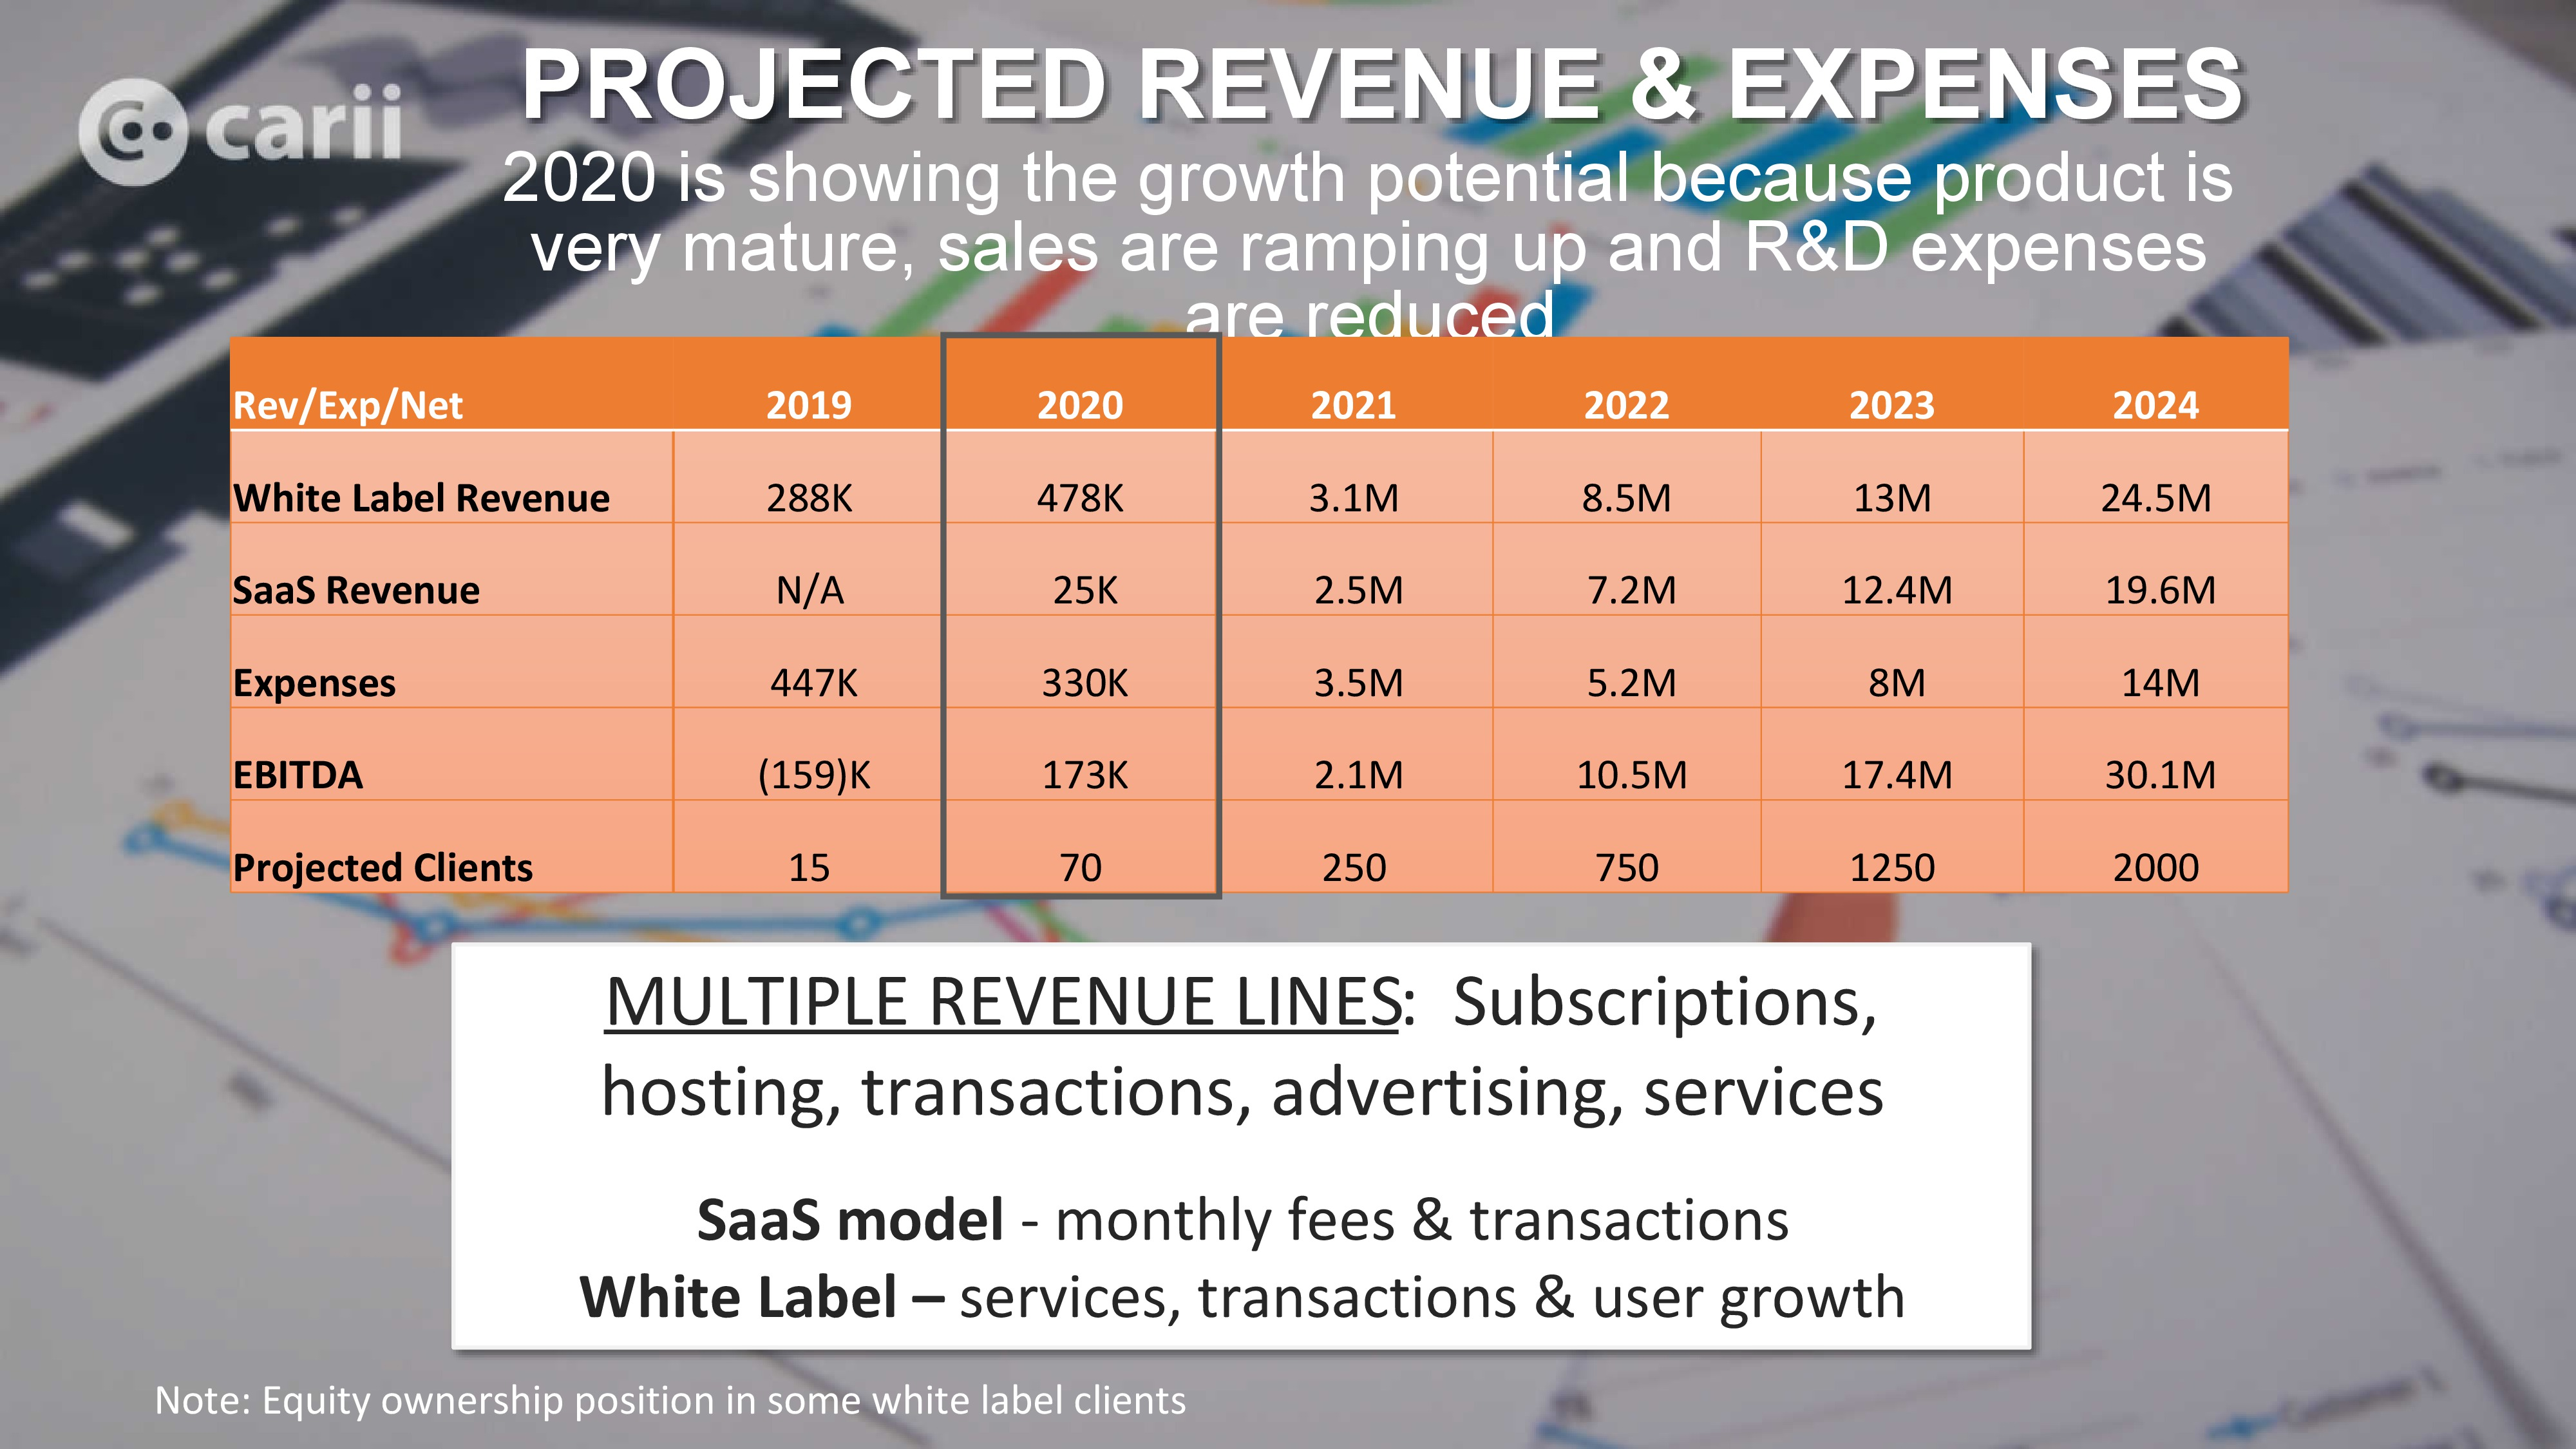 Projected revenue and expenses